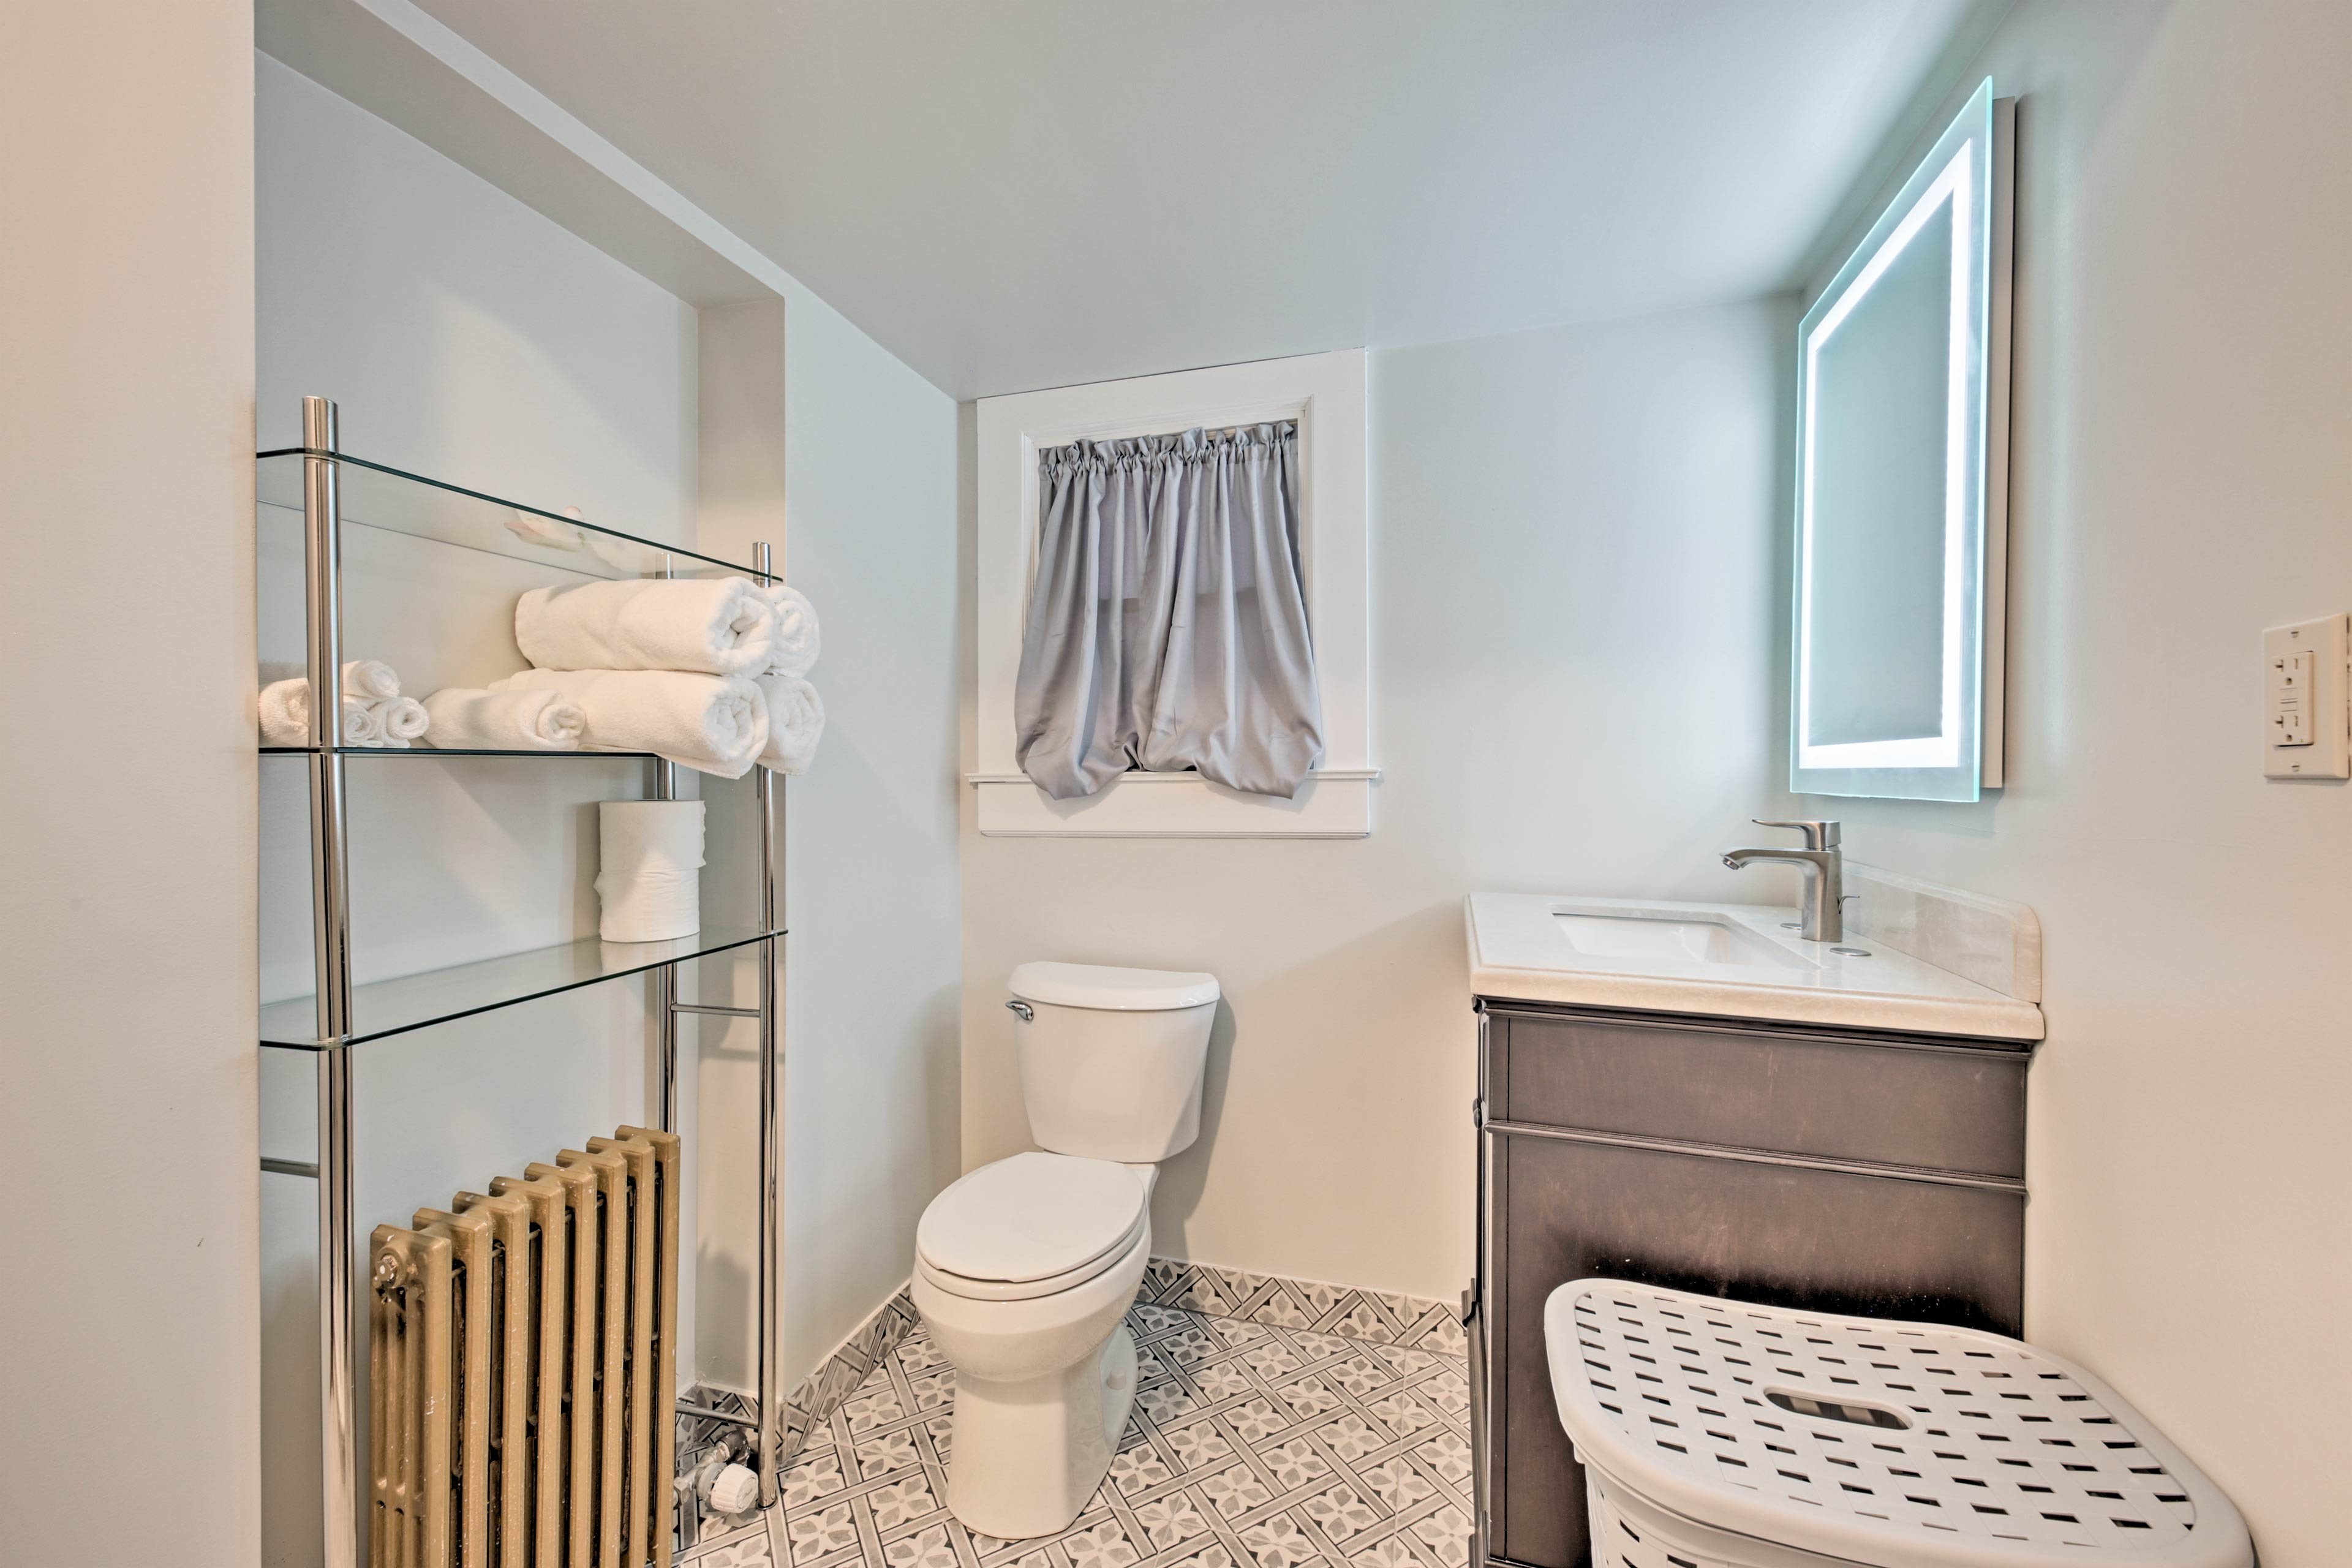 Enjoy the convenience of complimentary towels and linens.